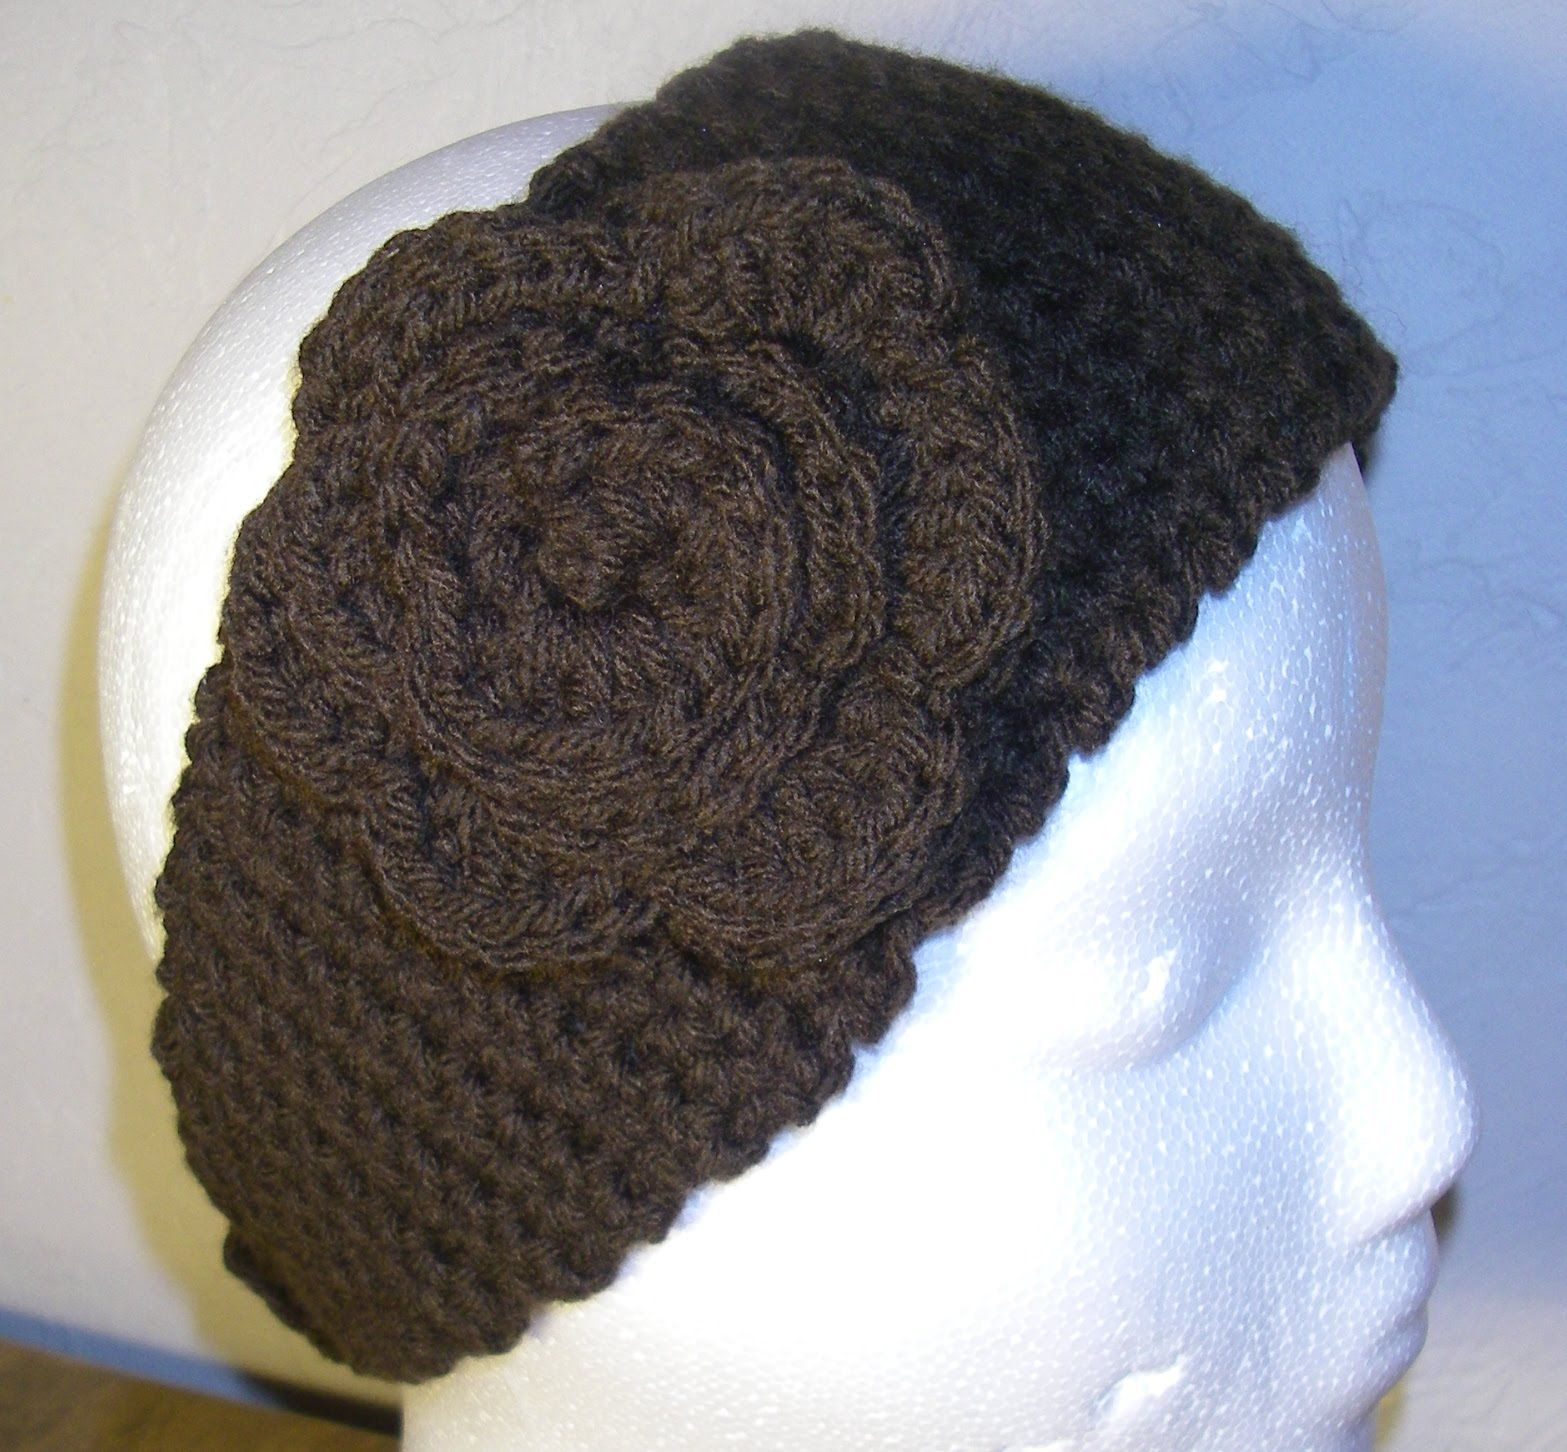 Headband Ear Warmer Knitting Pattern | Row 25-30: sc in each stitch ...